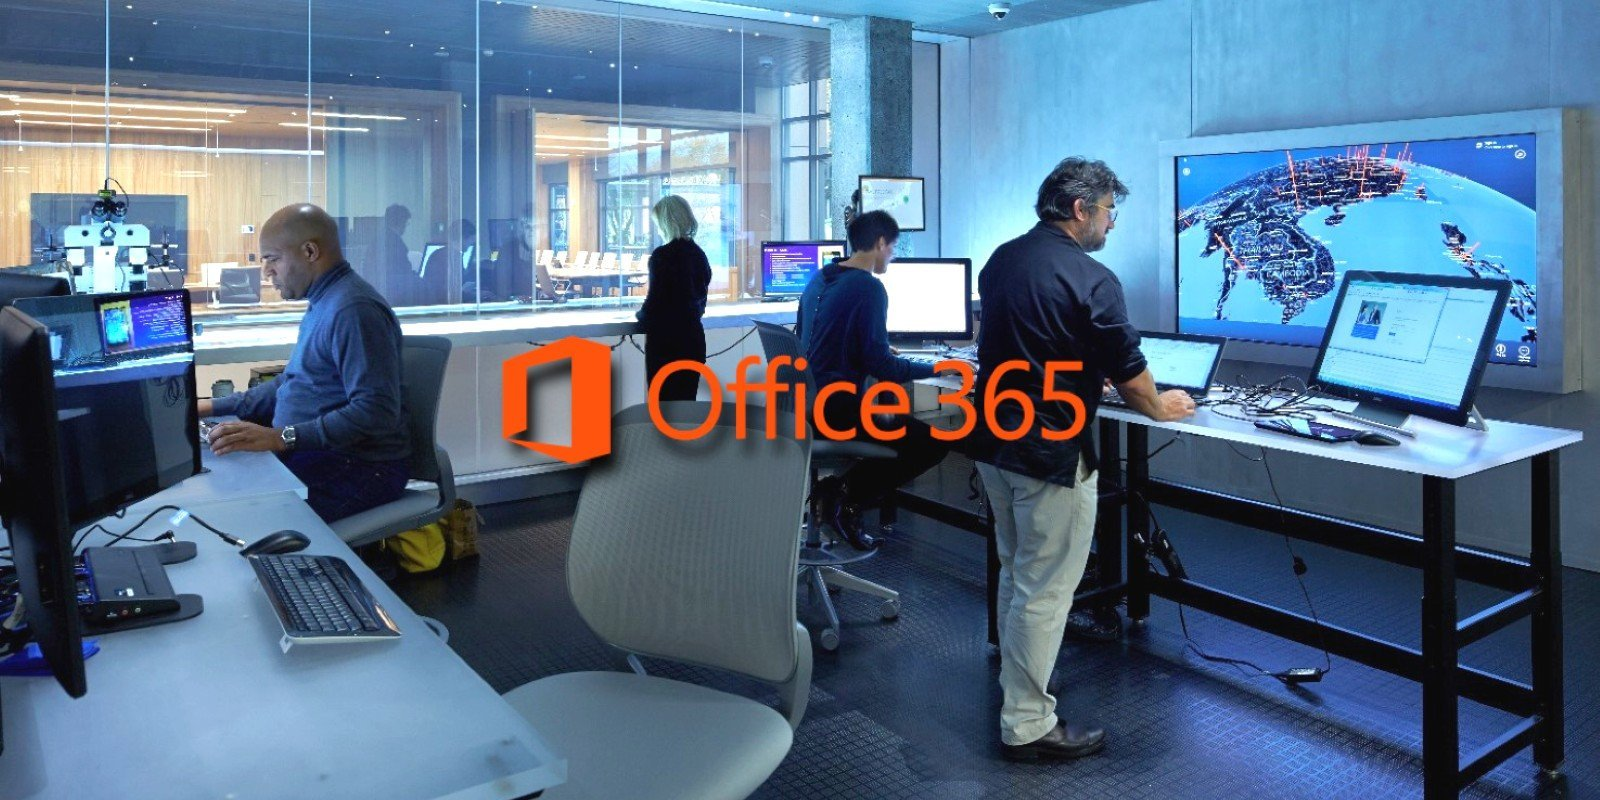 Microsoft Adds Protection For Critical Accounts In Office 365